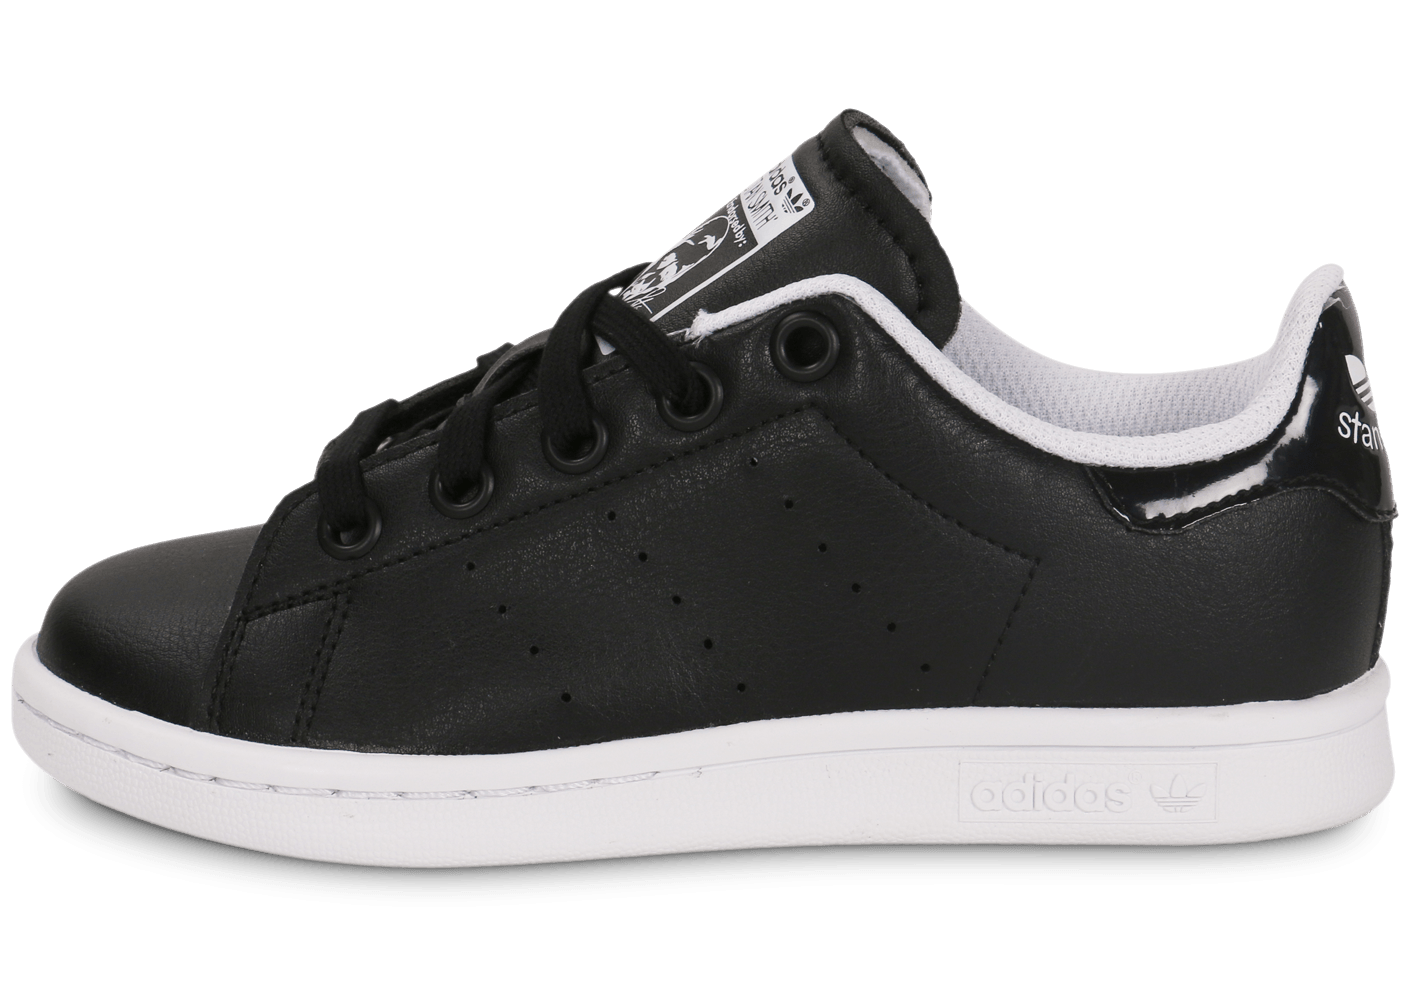 Stan Smith Noire Vernis